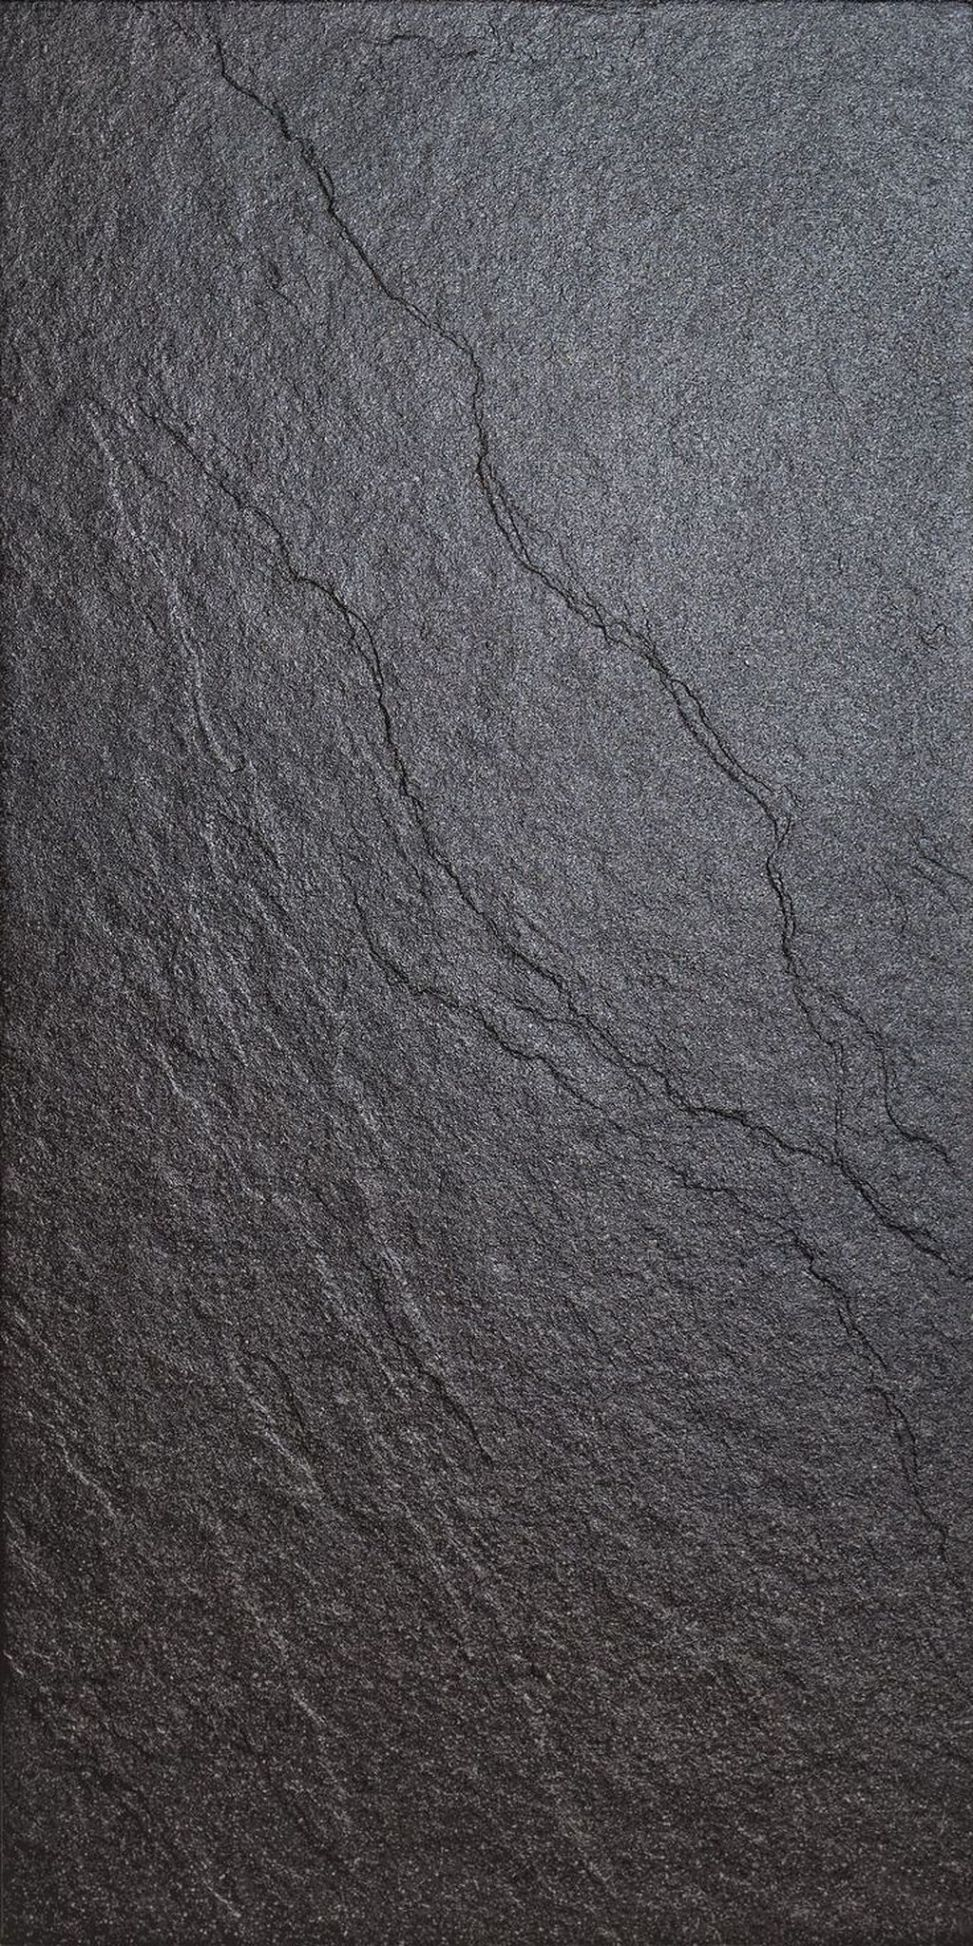 30 Awesome Wall And Floor Tile Texture Ideas Tiles Texture Floor Texture Texture Design